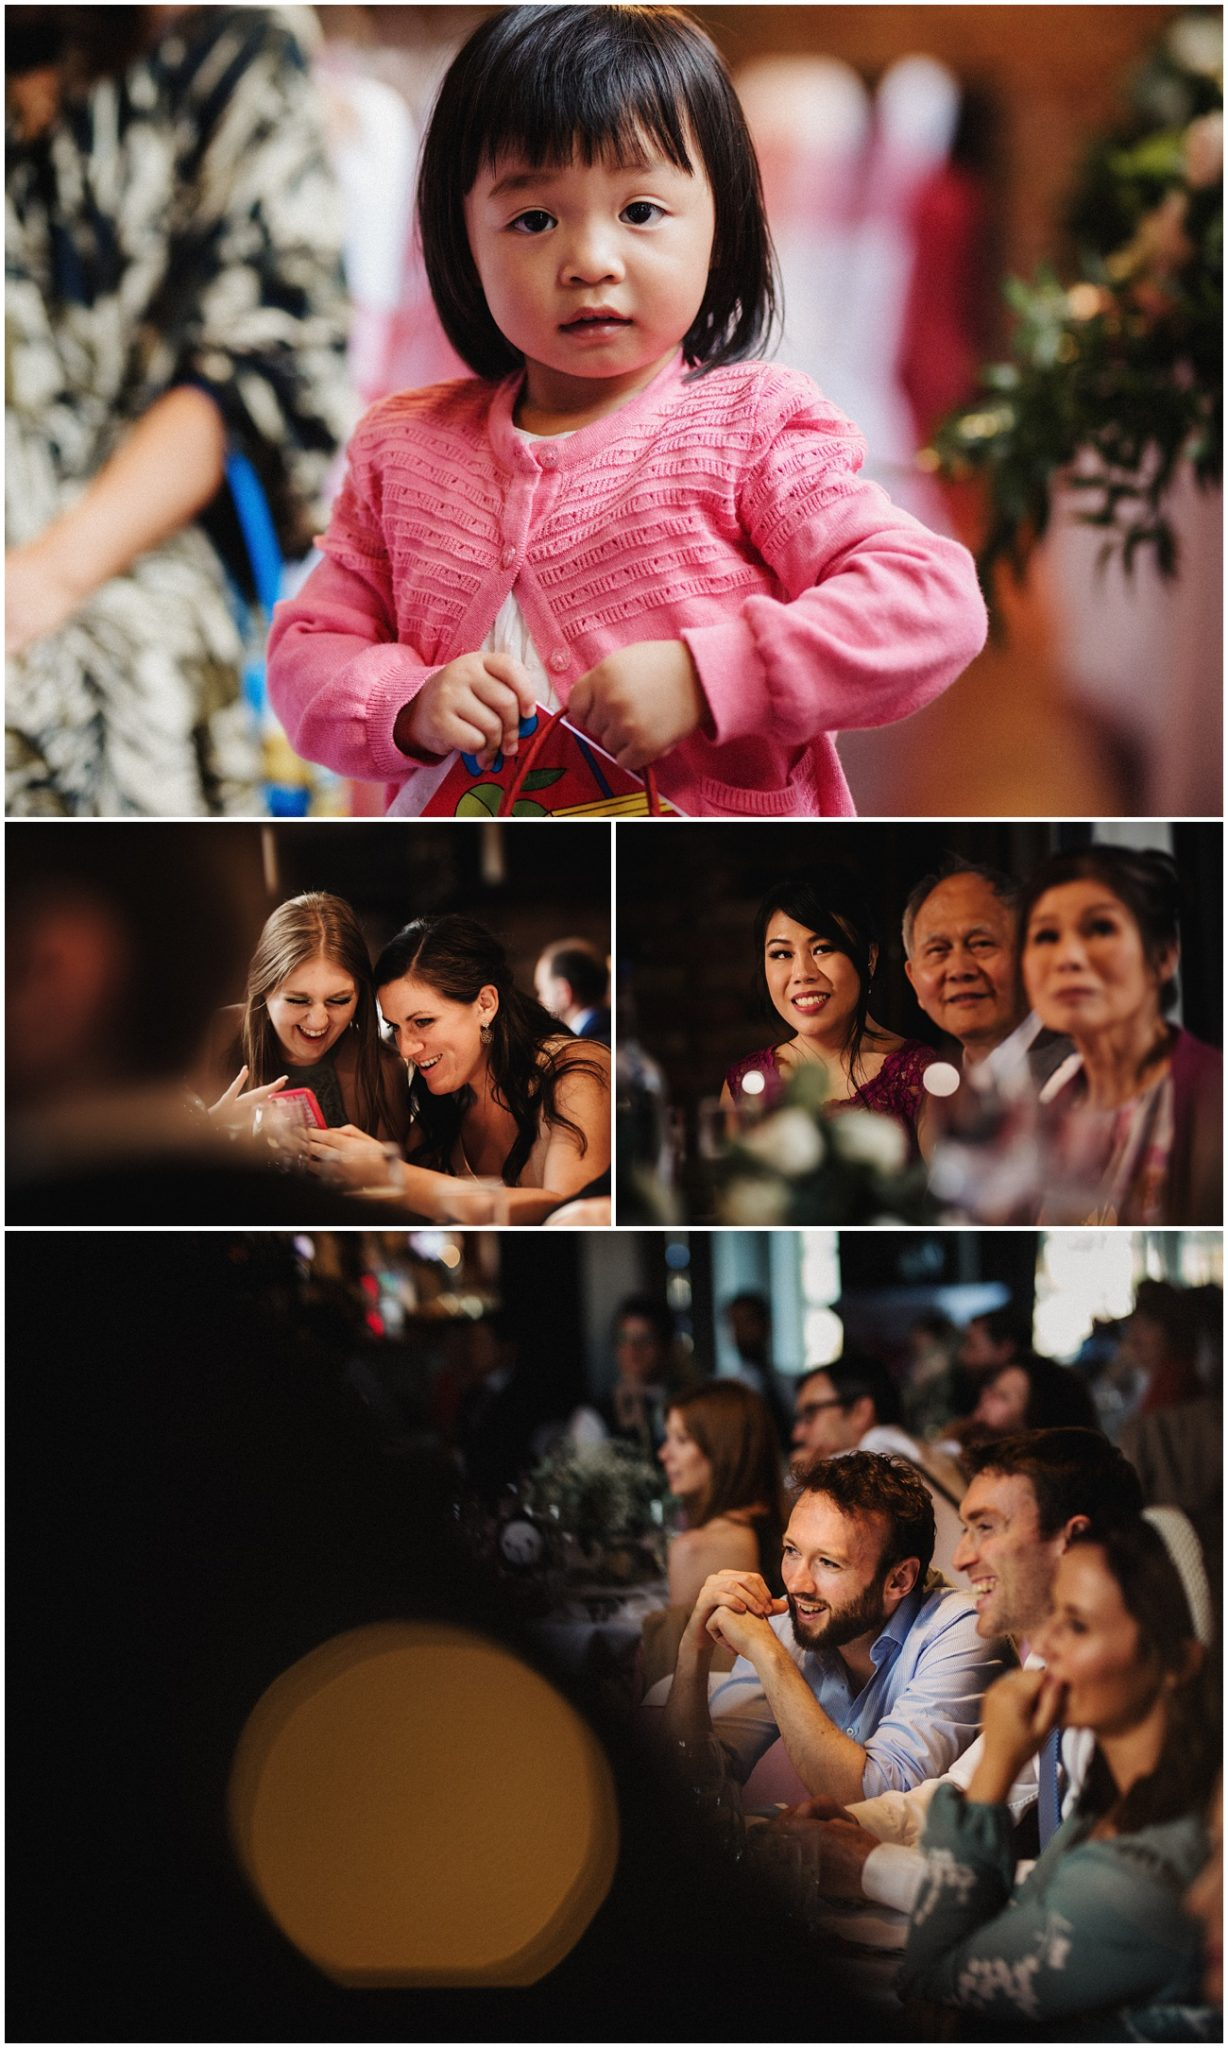 Shots of the wedding guests having fun at their tables during the wedding breakfast